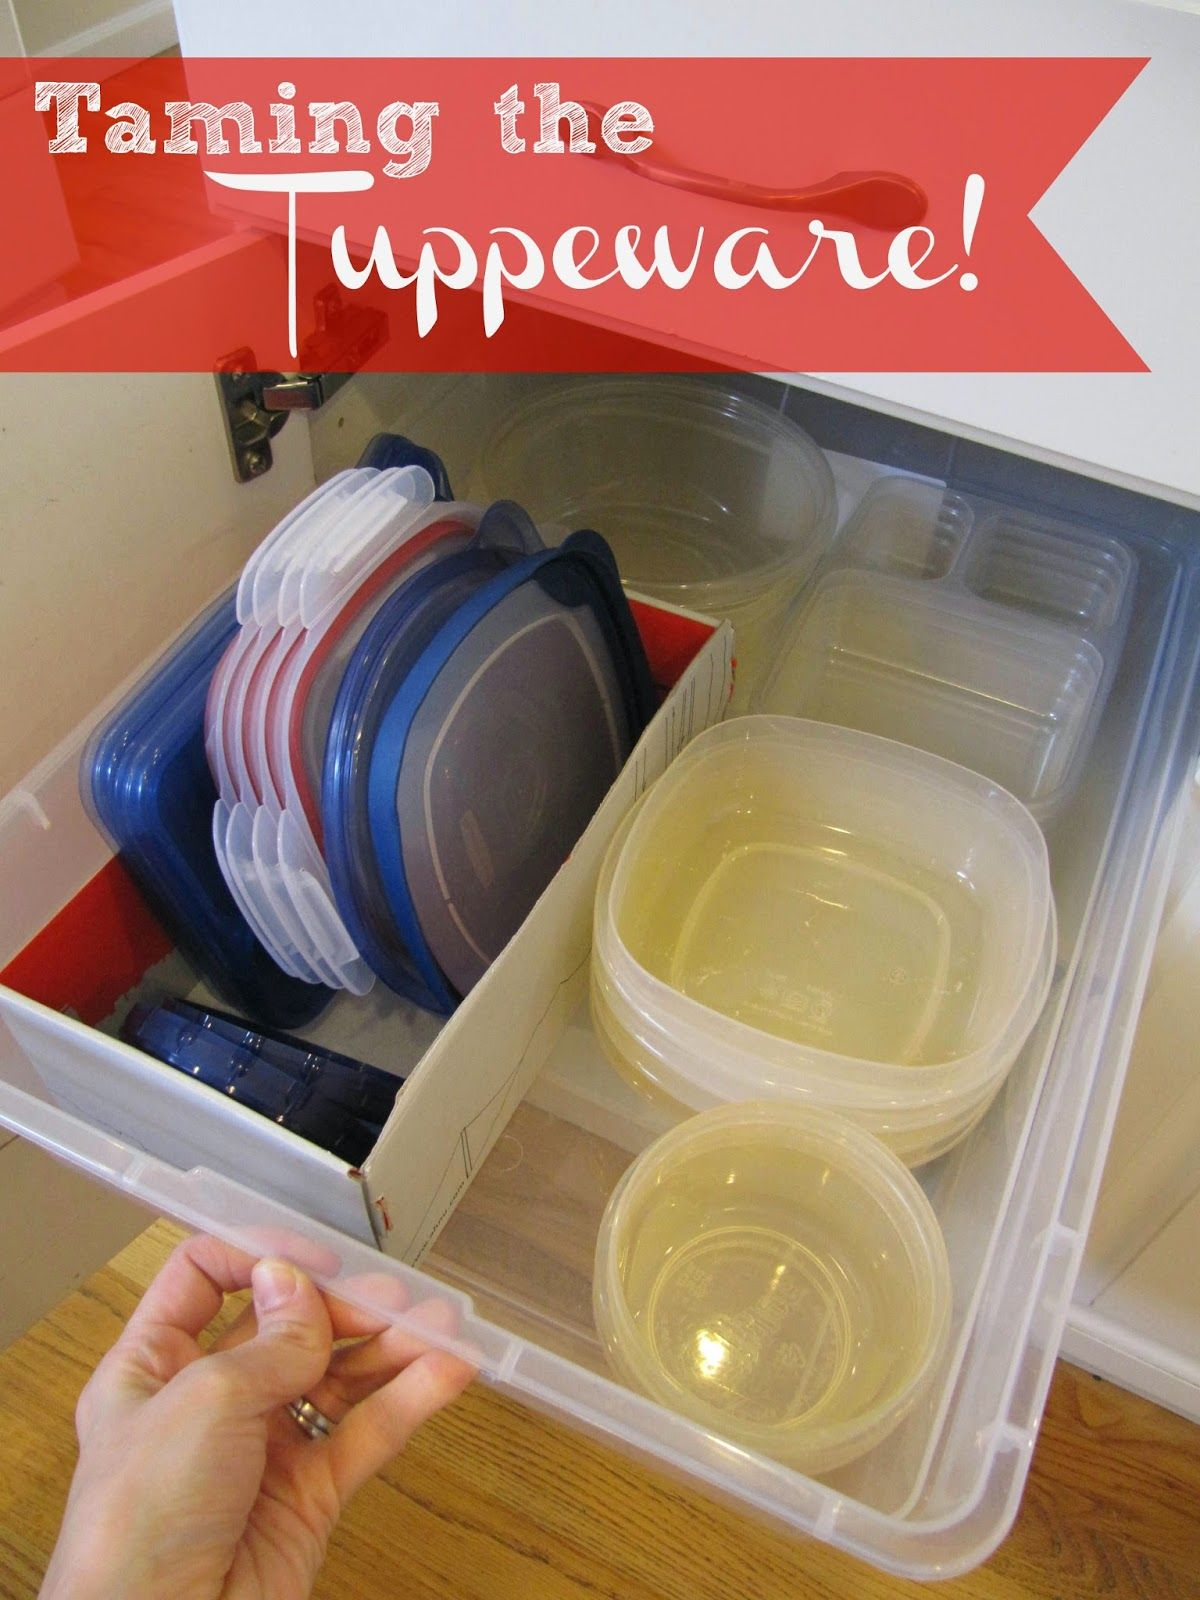 Kuchen Aufbewahrung Rund Taming The Tupperware Everyday Organizing For The Home